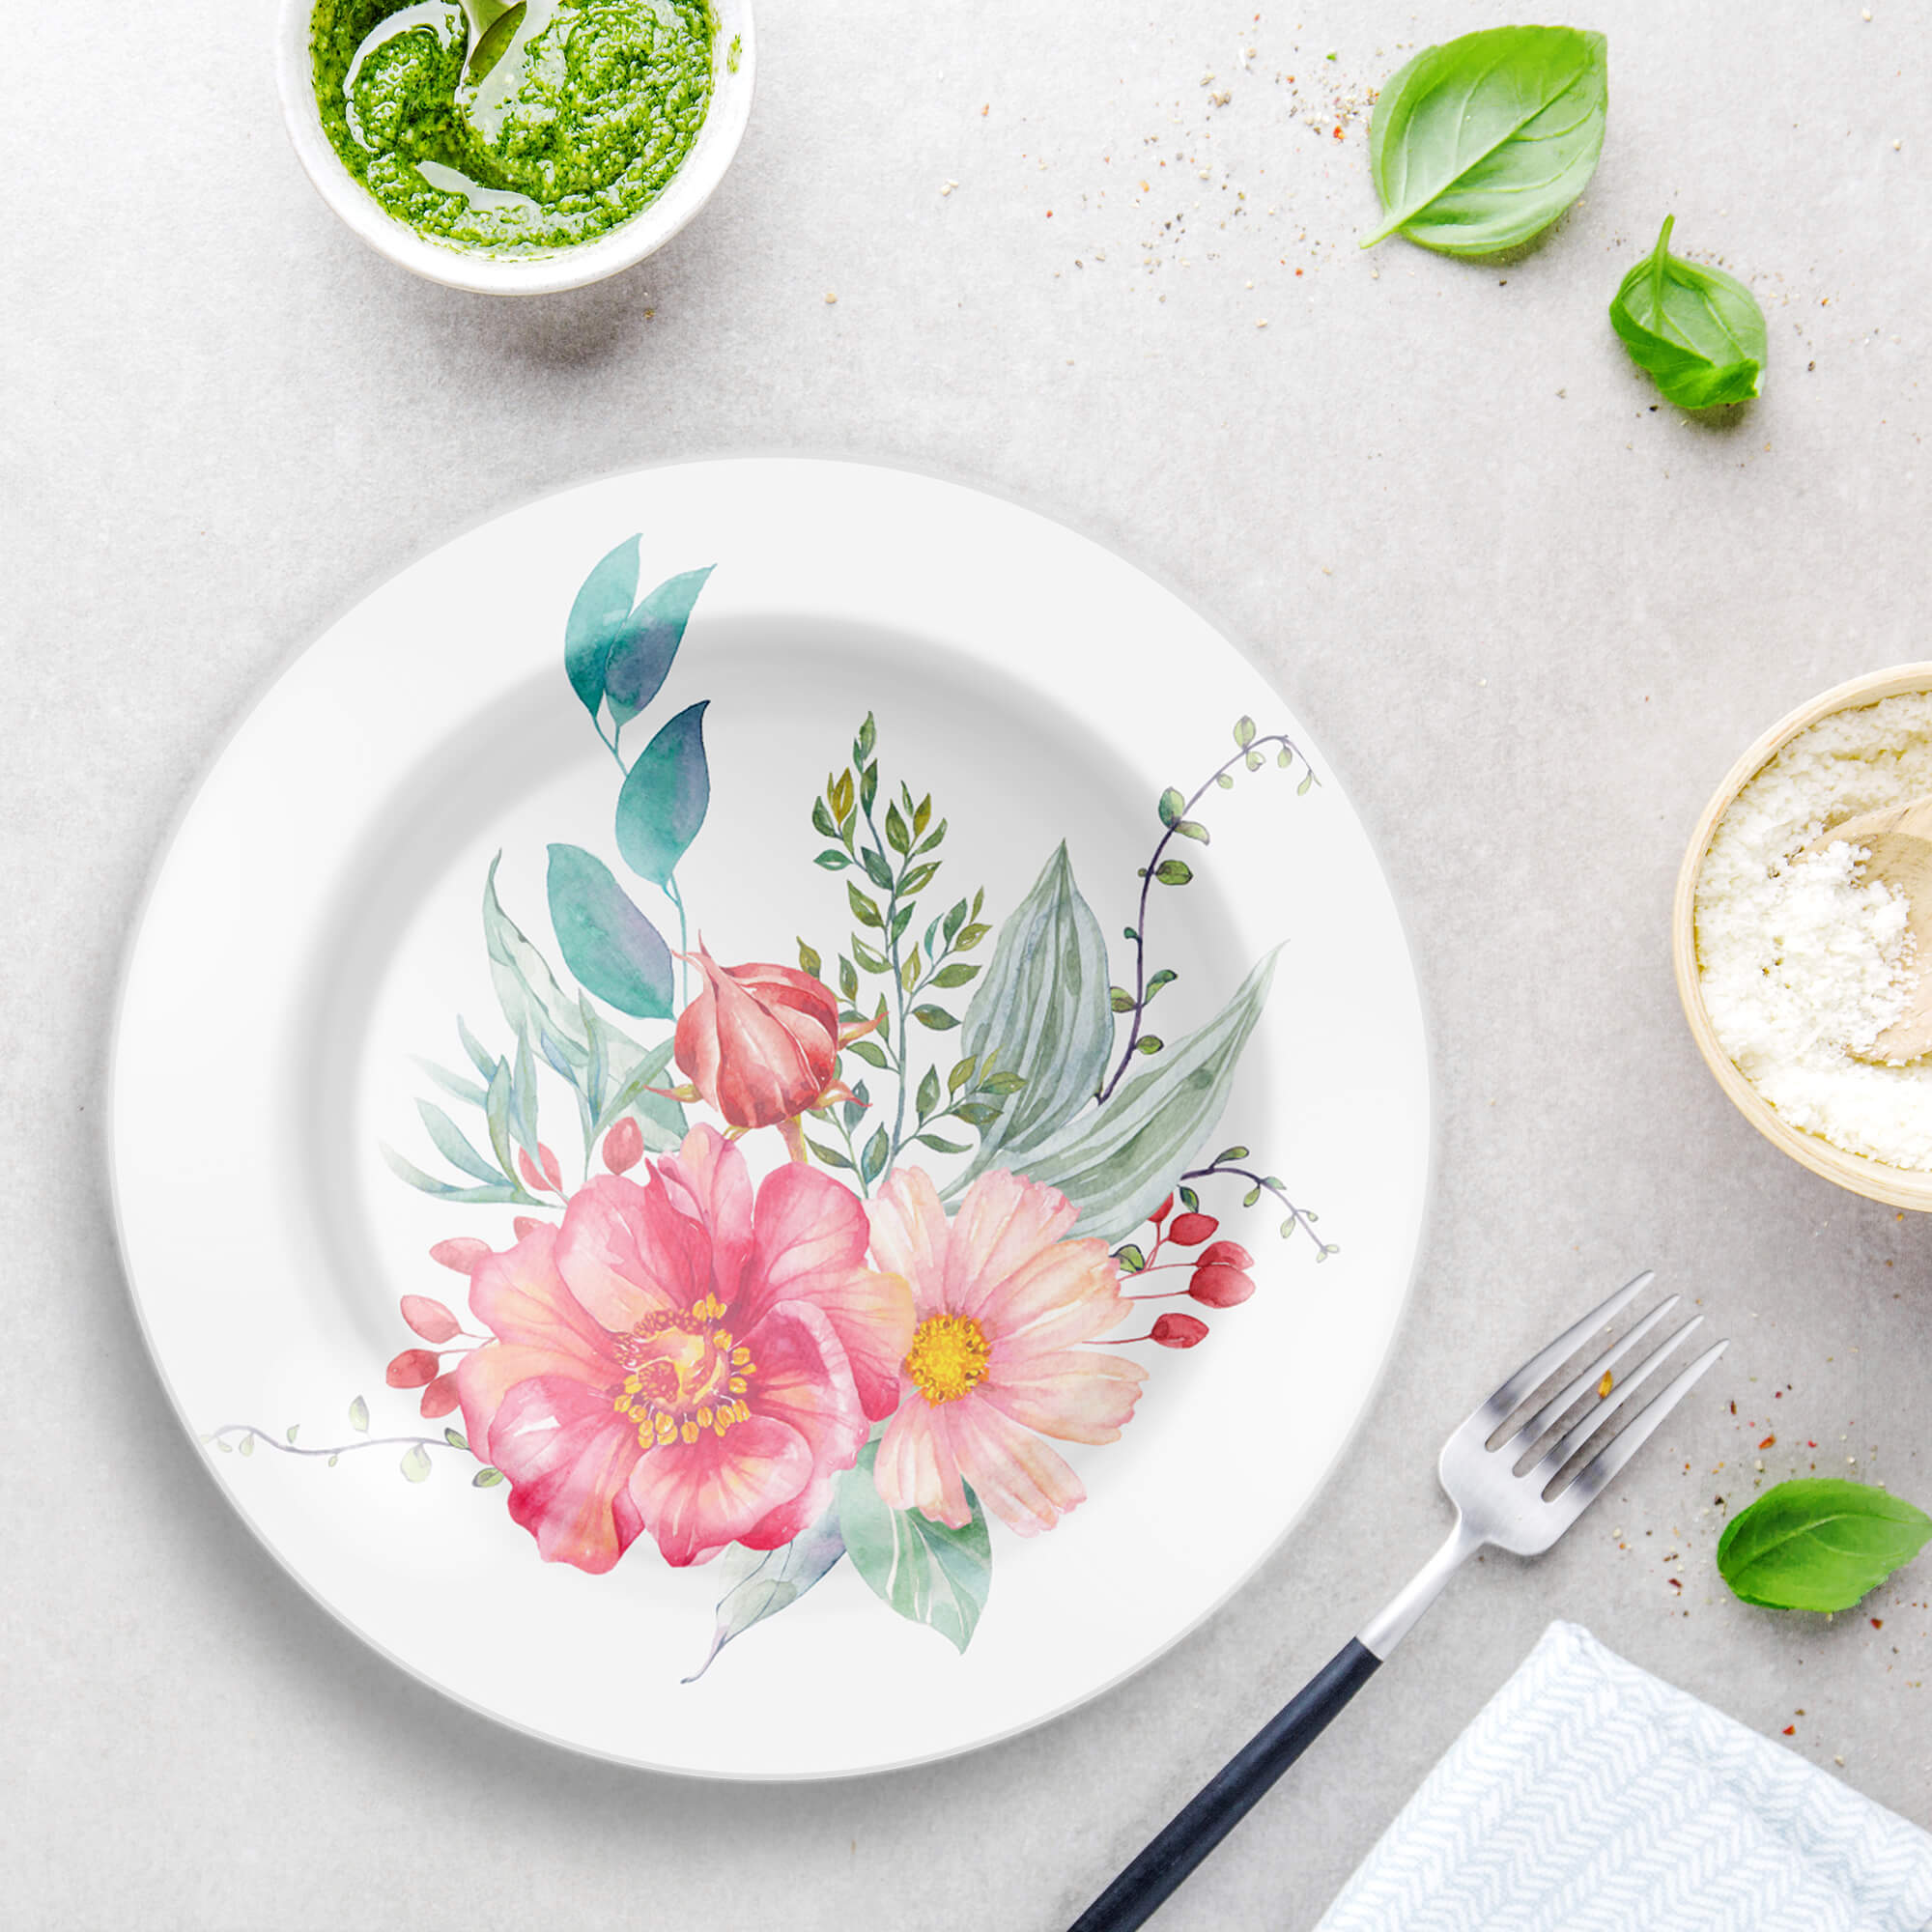 Free Dining Plate Mockup PSD Template